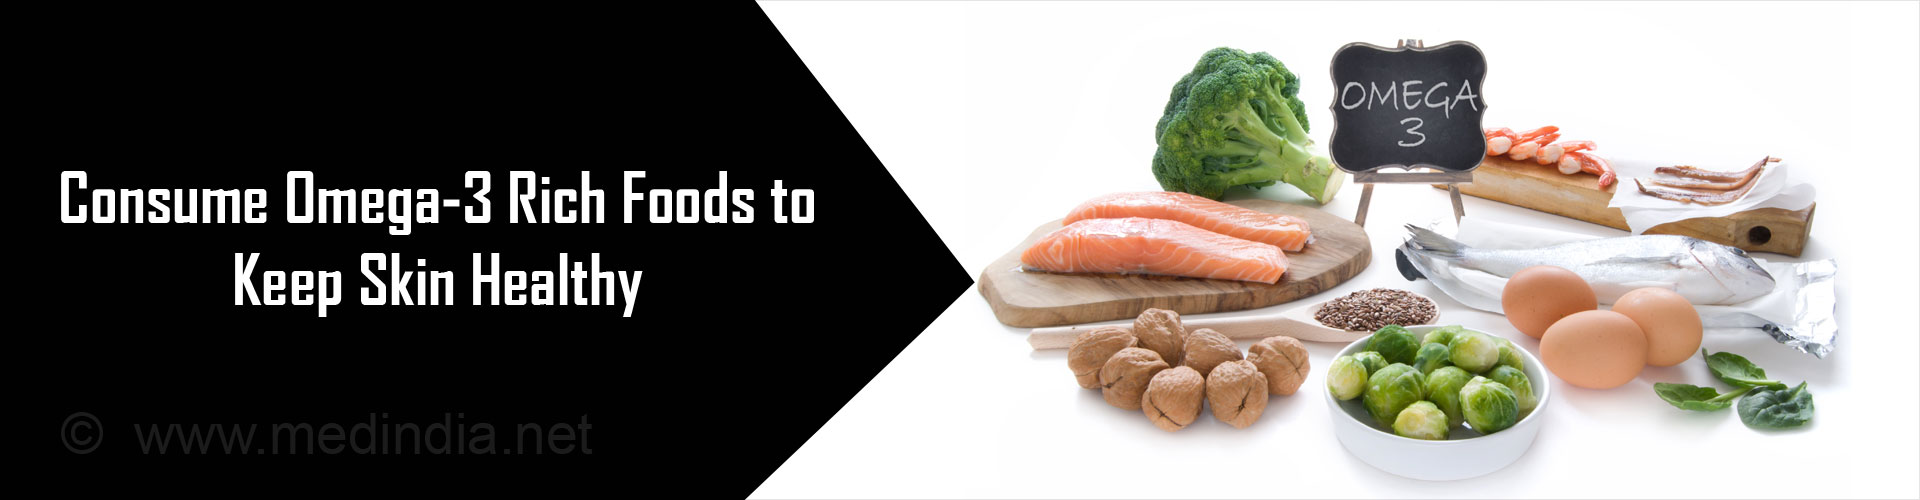 Consume Omega-3 Rich Foods to Keep Skin Healthy